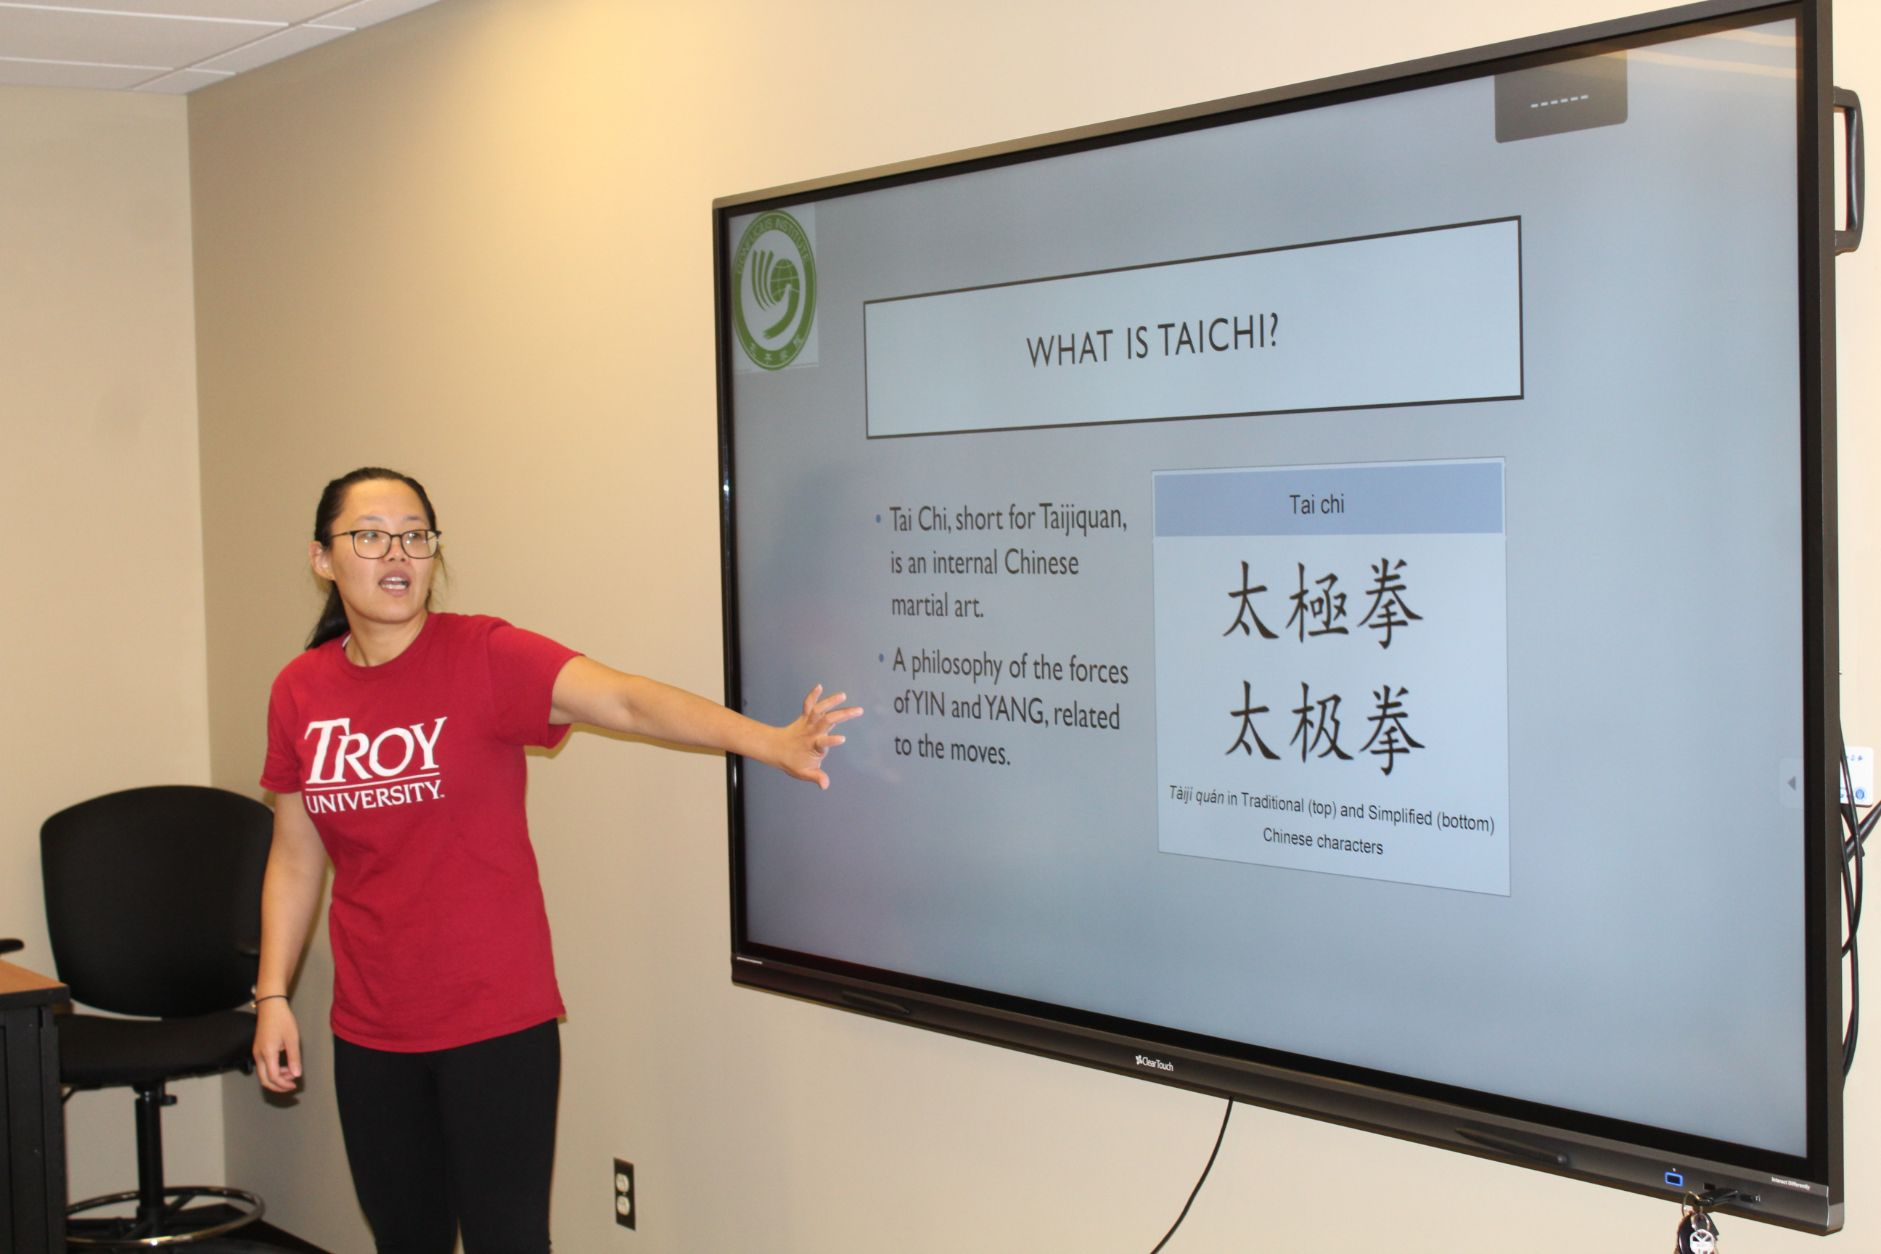 The Visiting Scholar, He Jing, explains Tai Chi's meaning and history.